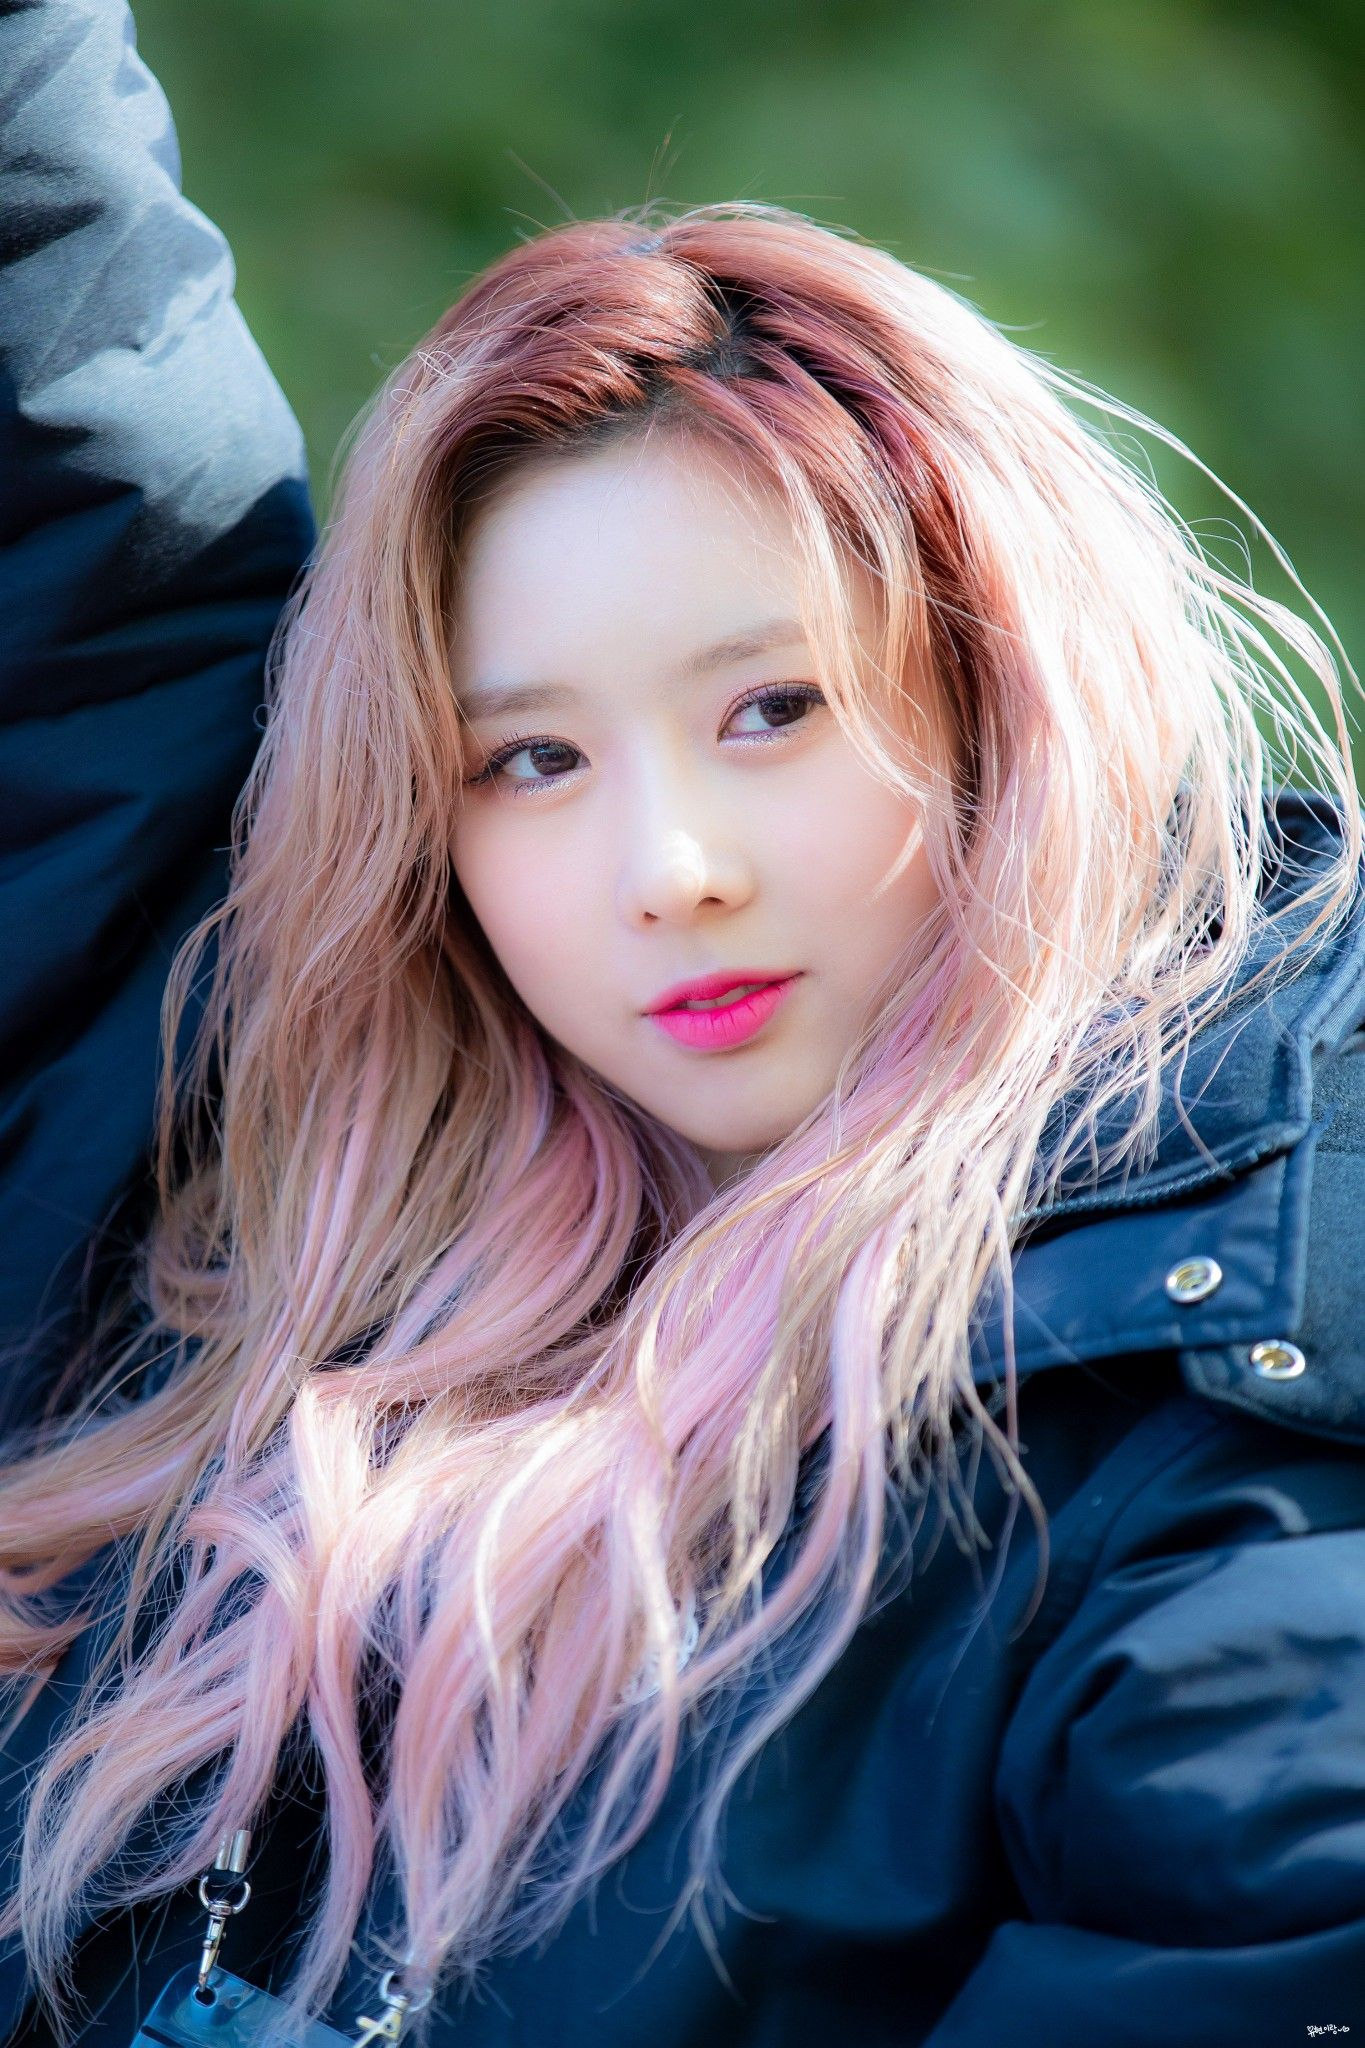 Weareoneidols Kpop Music Idol Bias Dreamcatcher Yoohyeon Dream Catcher Idol Beauty